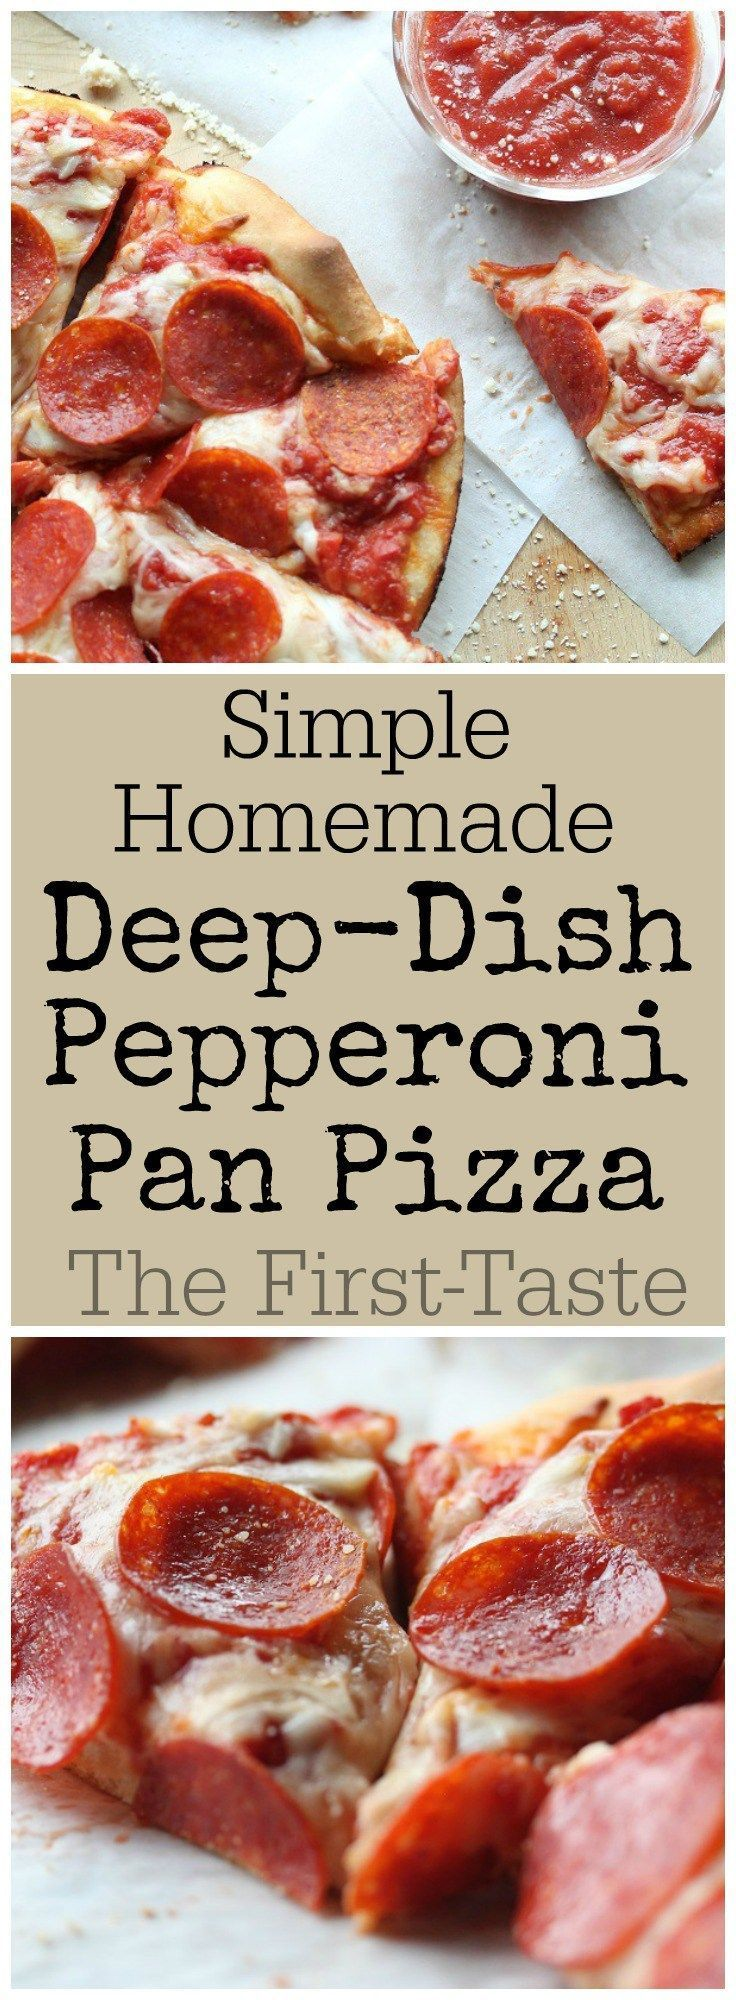 Simple Homemade Deep-Dish Pepperoni Pan Pizza - this looks like Pizza Hut pan pizza!